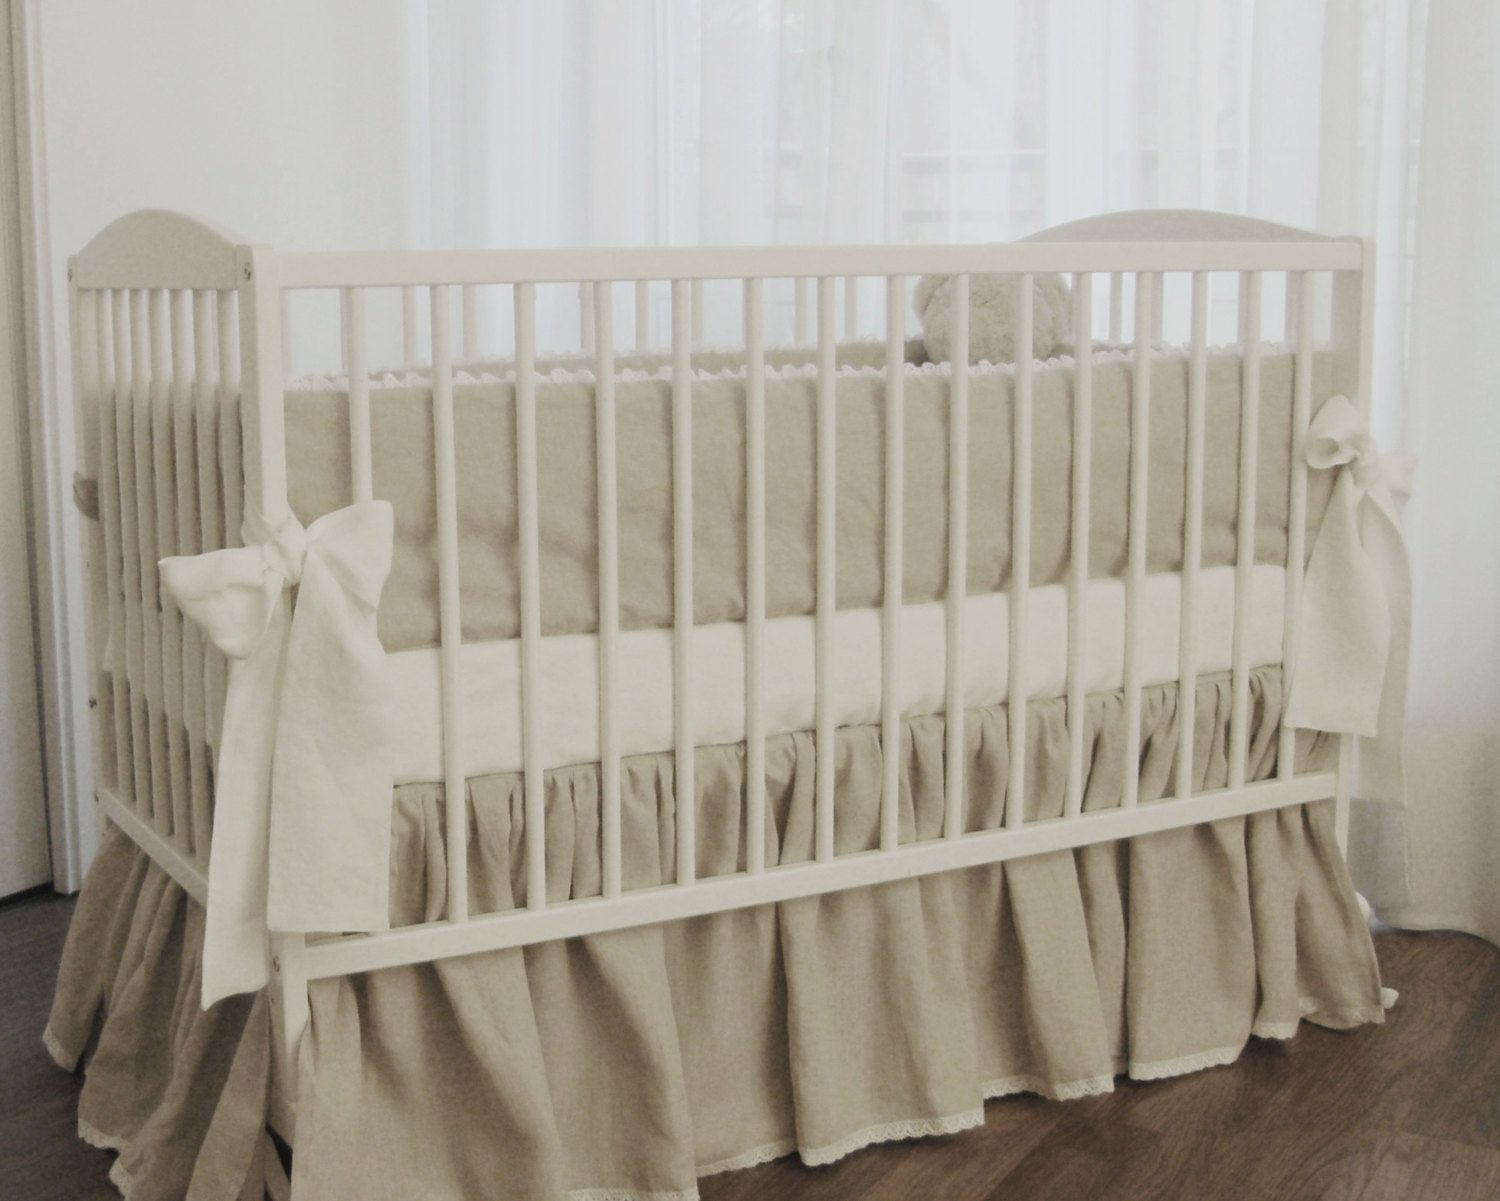 This Beautiful Linen Crib Skirt Is An Incredible Way To Add